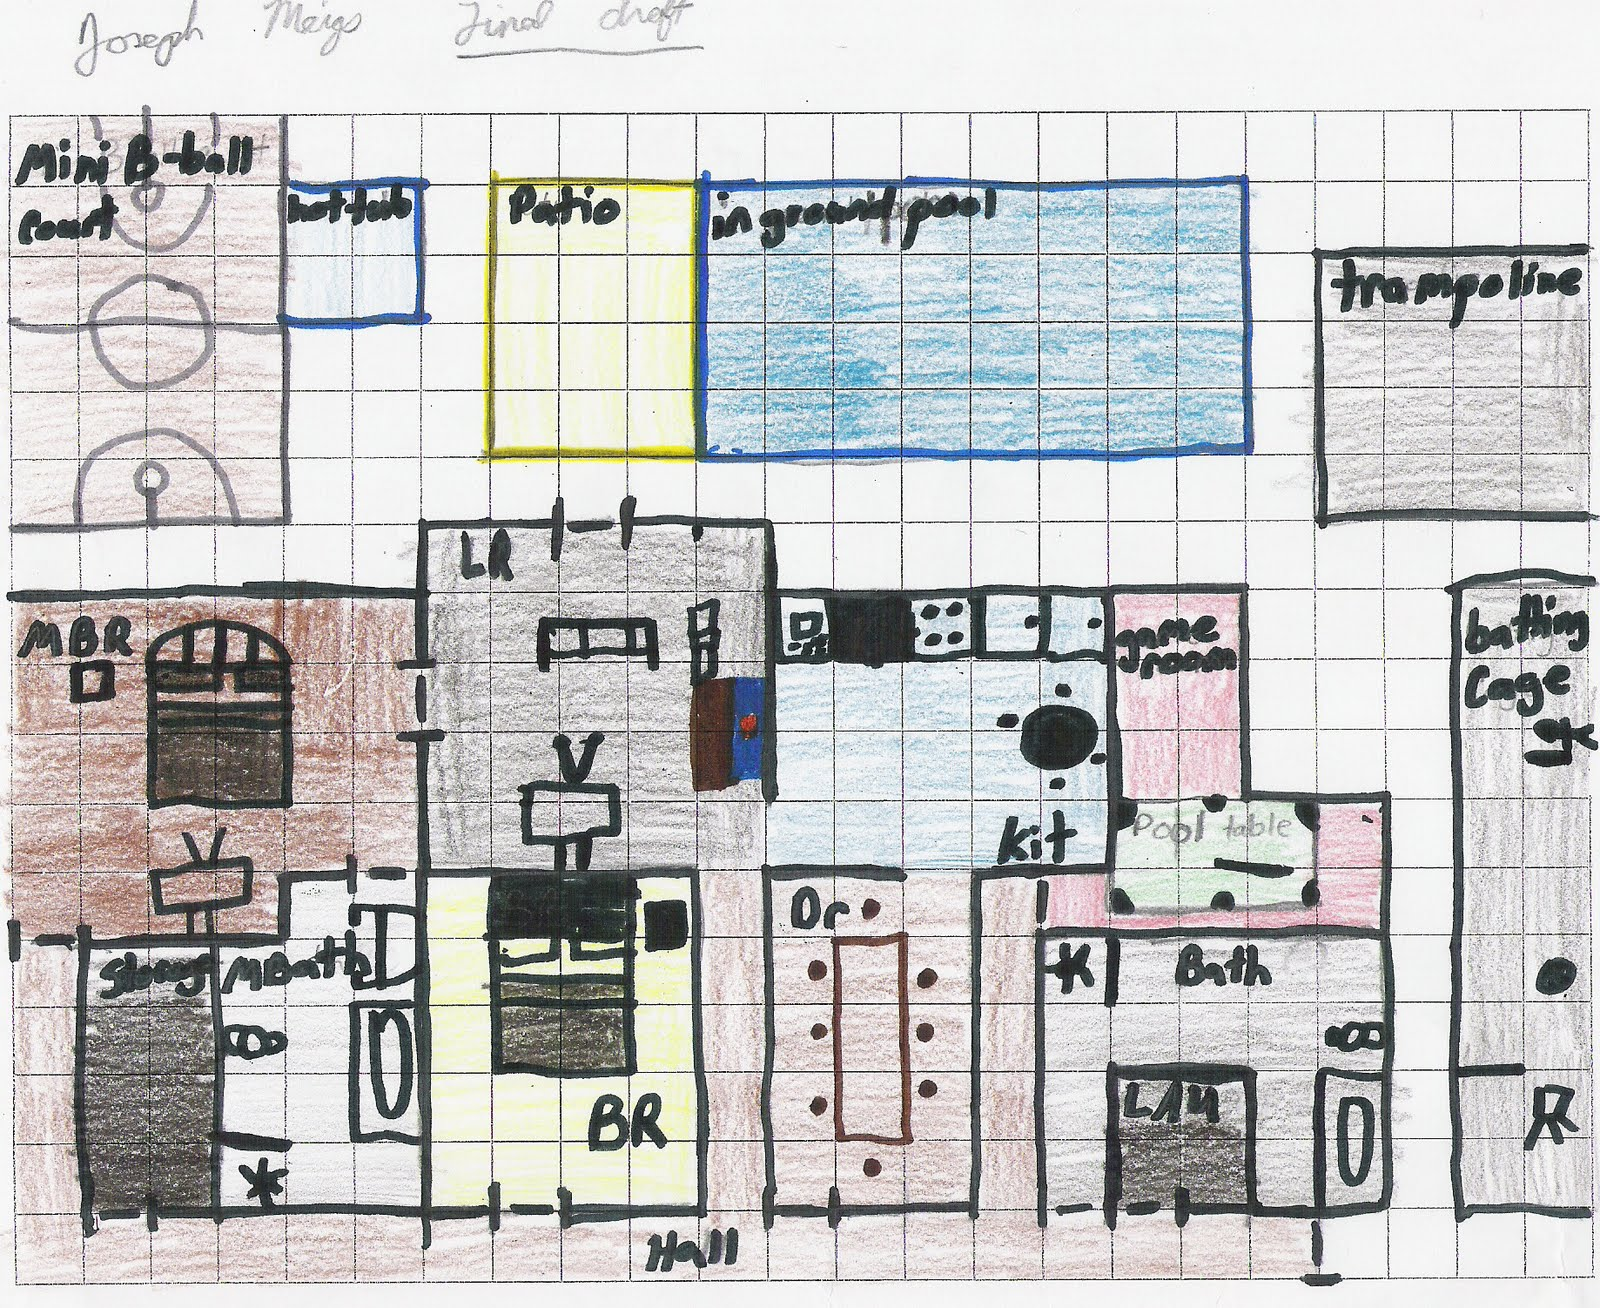 Cms 6th grade math dream house project samples for House projects plans